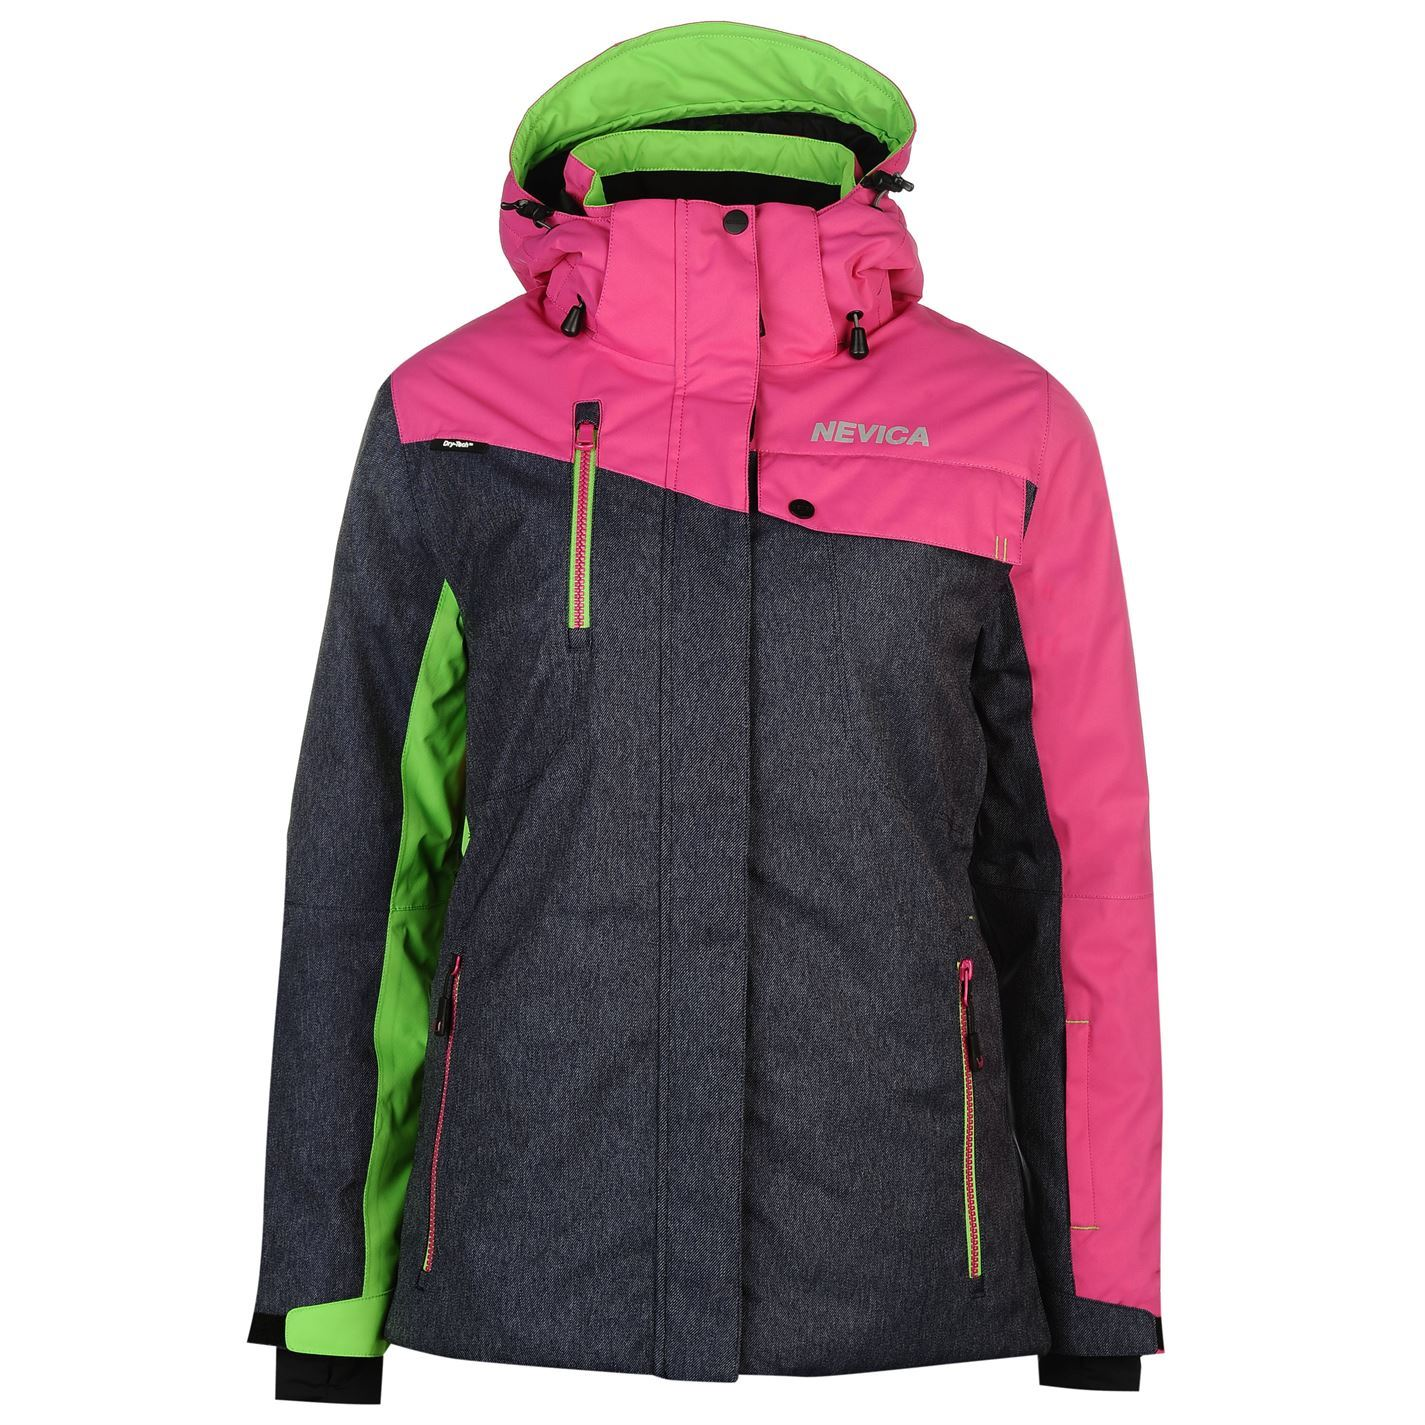 Details about Nevica Womens Fiona Jacket Snow Winter Sports Full Zip Hooded  Top 675de0958c80